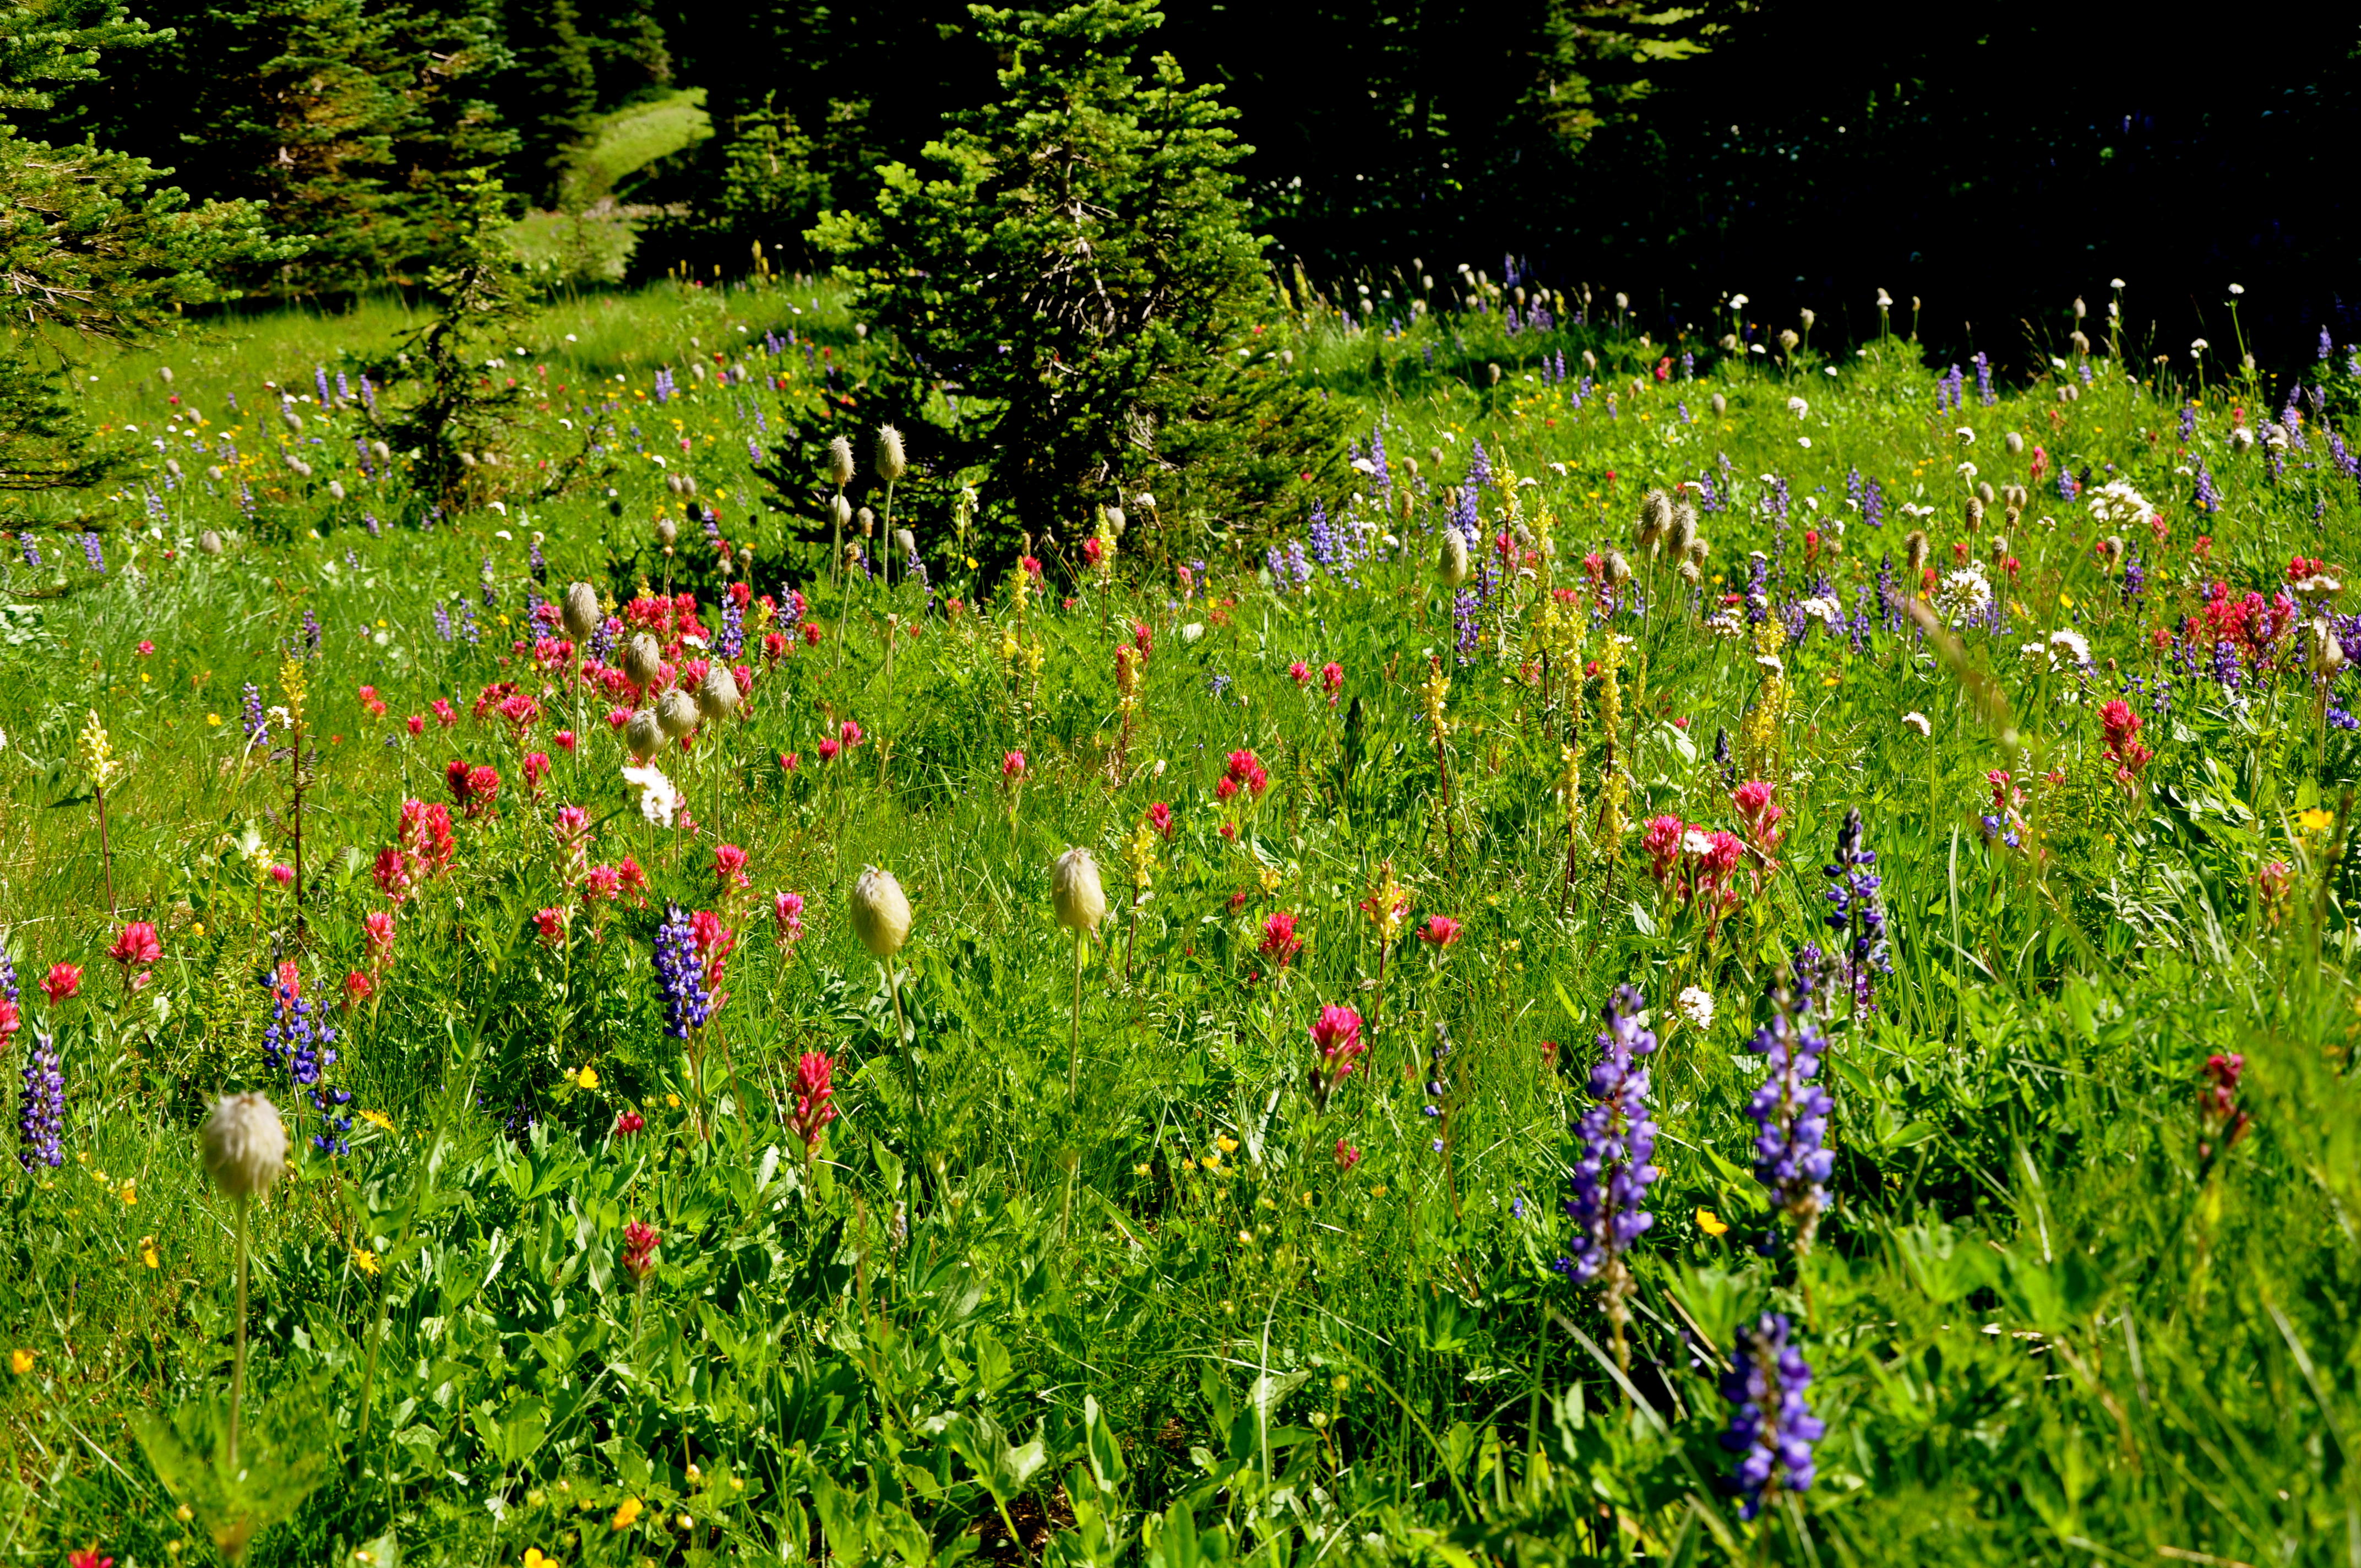 Flowers in Berkeley Meadows, Mt. Rainier National Park, WA. Life thrives even in rugged places, and so, too, in different ways, Love. Photo by William Bass on a solo dayhike, Friday 13 August 2010.